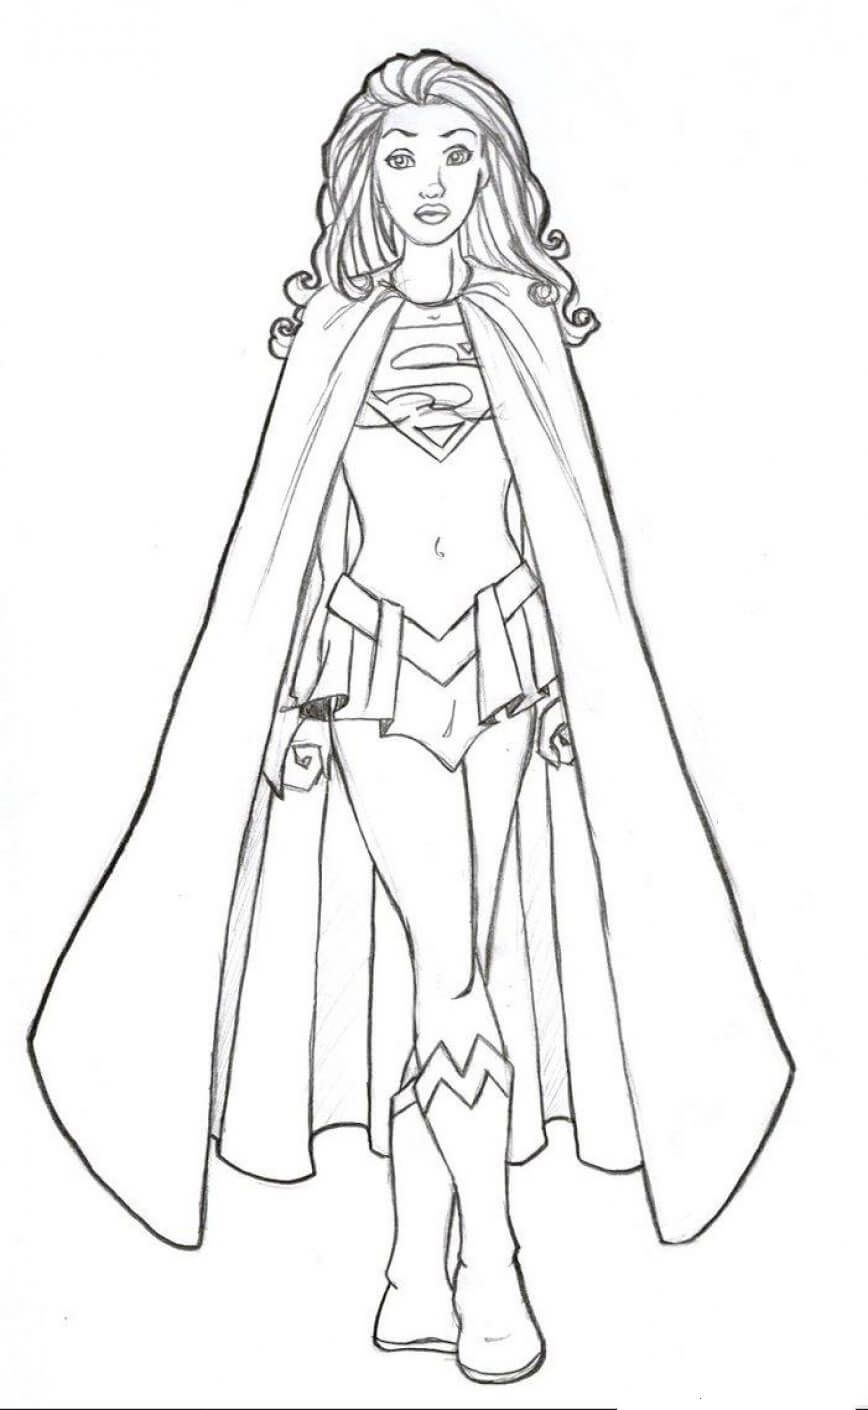 Supergirl Coloring Pages   Super Hero Reading   Superhero